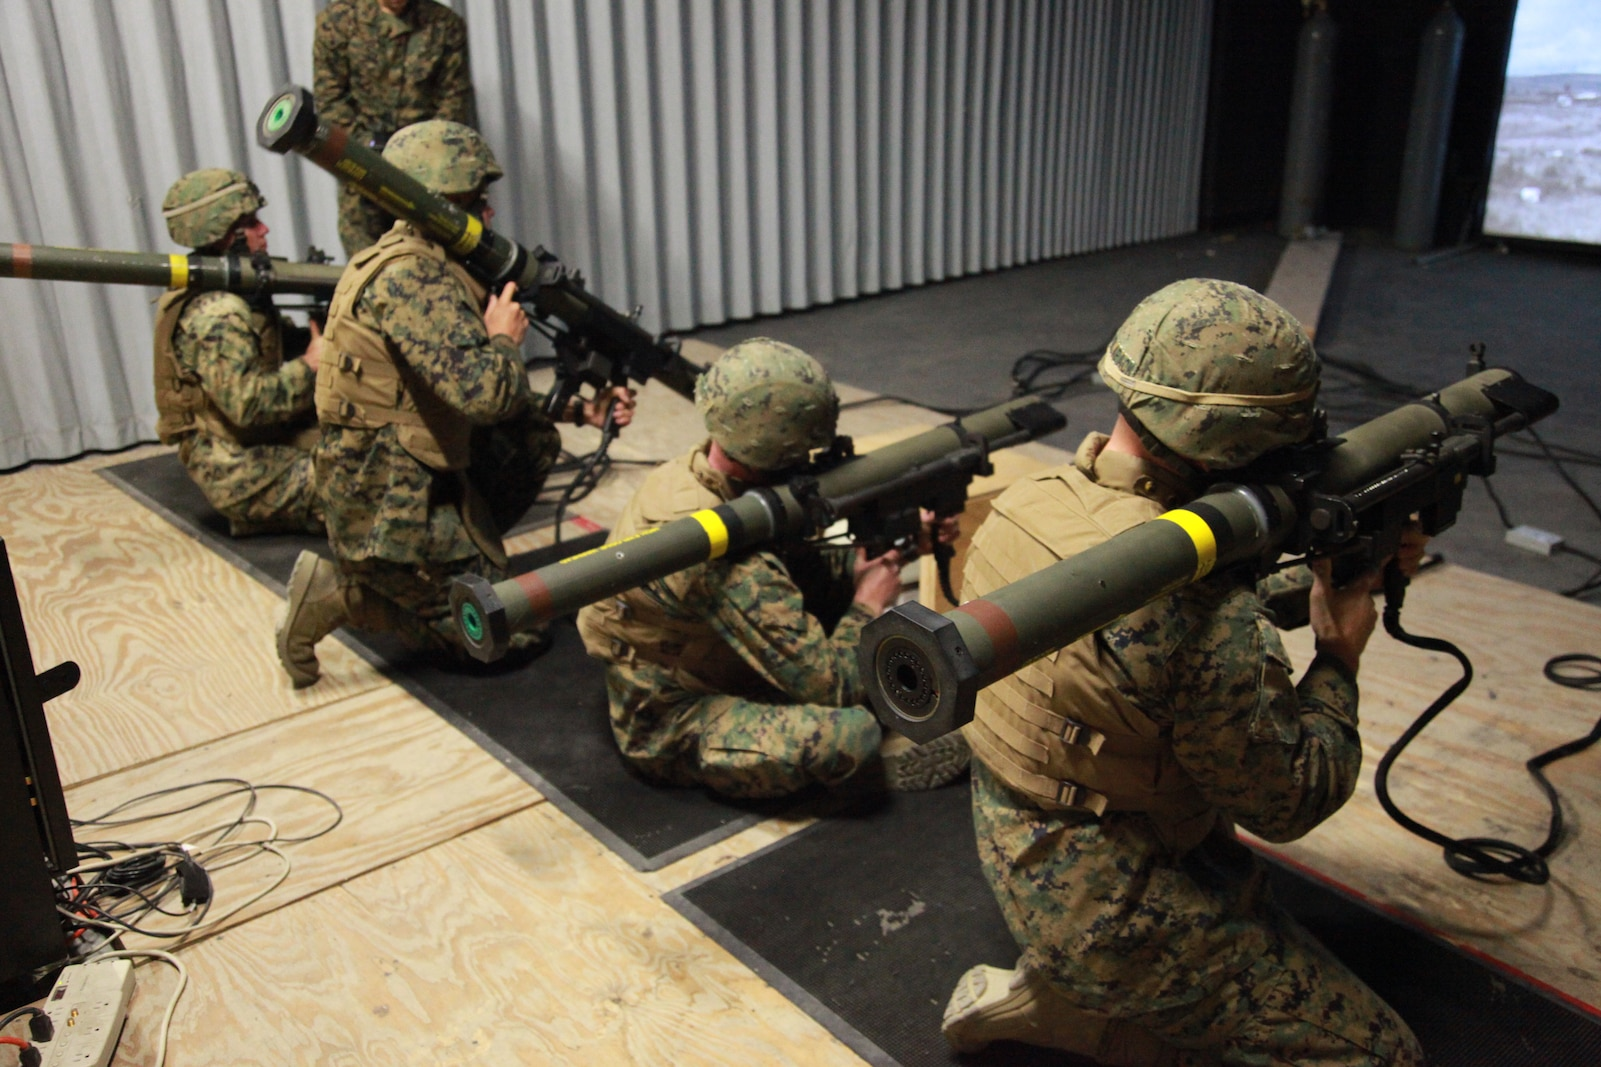 U.S. Marines with Weapons Platoon, Lima Company, 3rd Battalion, 1st Marine Regiment practice marksmanship with the shoulder-launched multipurpose assault weapon in the indoor simulated marksmanship trainer at Camp Horno, at Camp Pendleton, Calif., Nov. 24, 2009. The 3rd Battalion is preparing for upcoming deployments. (U.S. Marine Corps photo by Lance Cpl. Brandyn E. Council/Released)